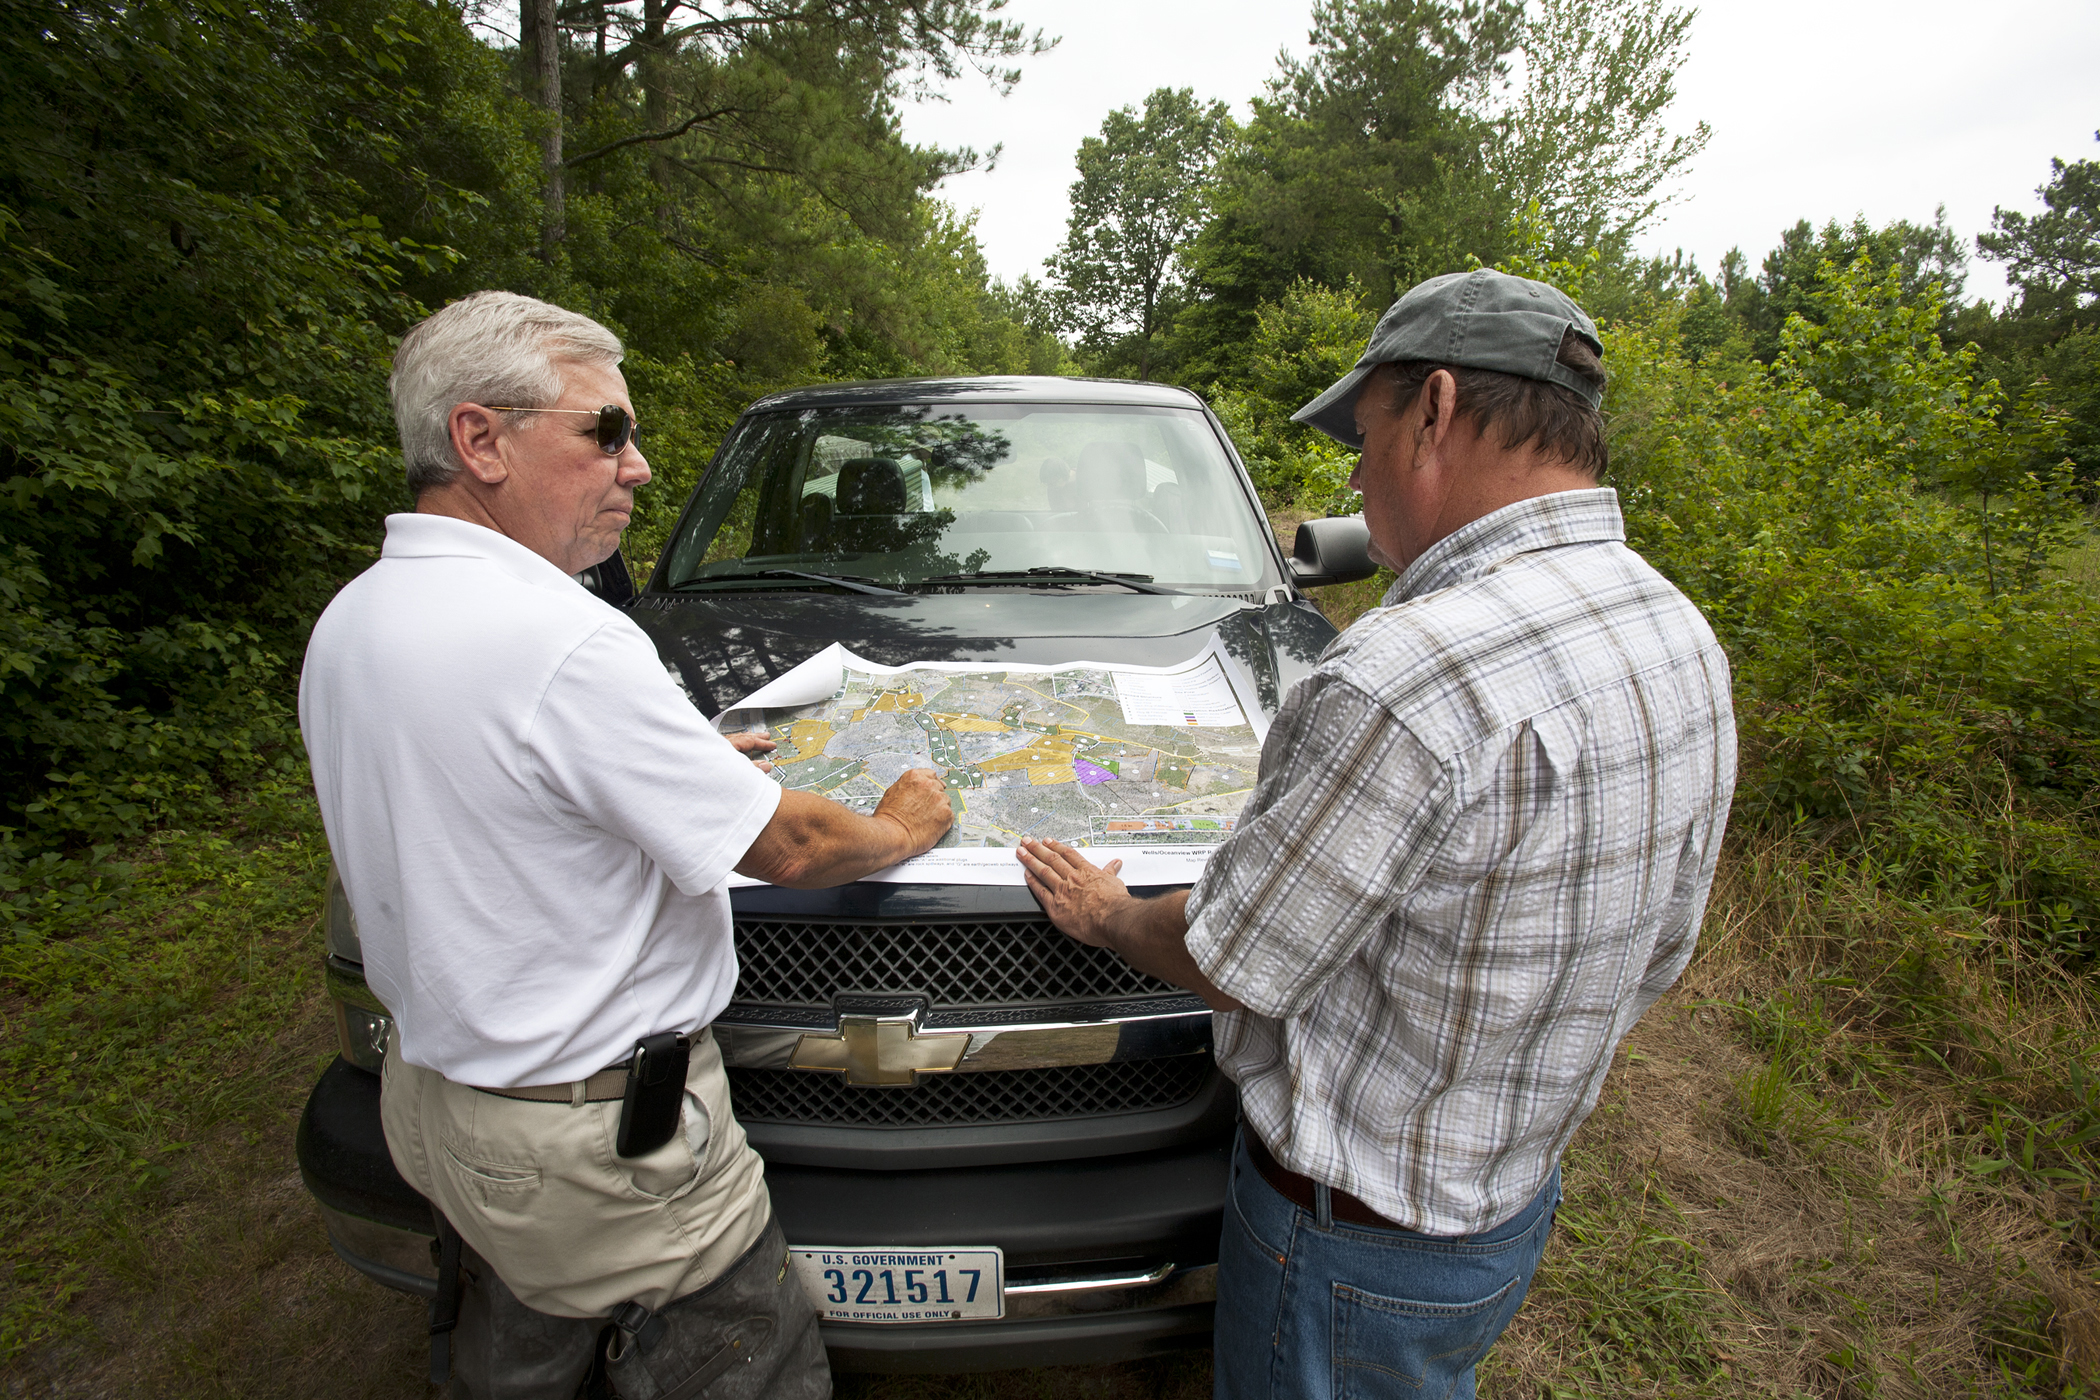 District Conservationist Nelson Brice and Kirby Wells discuss restoration plans for the easement.